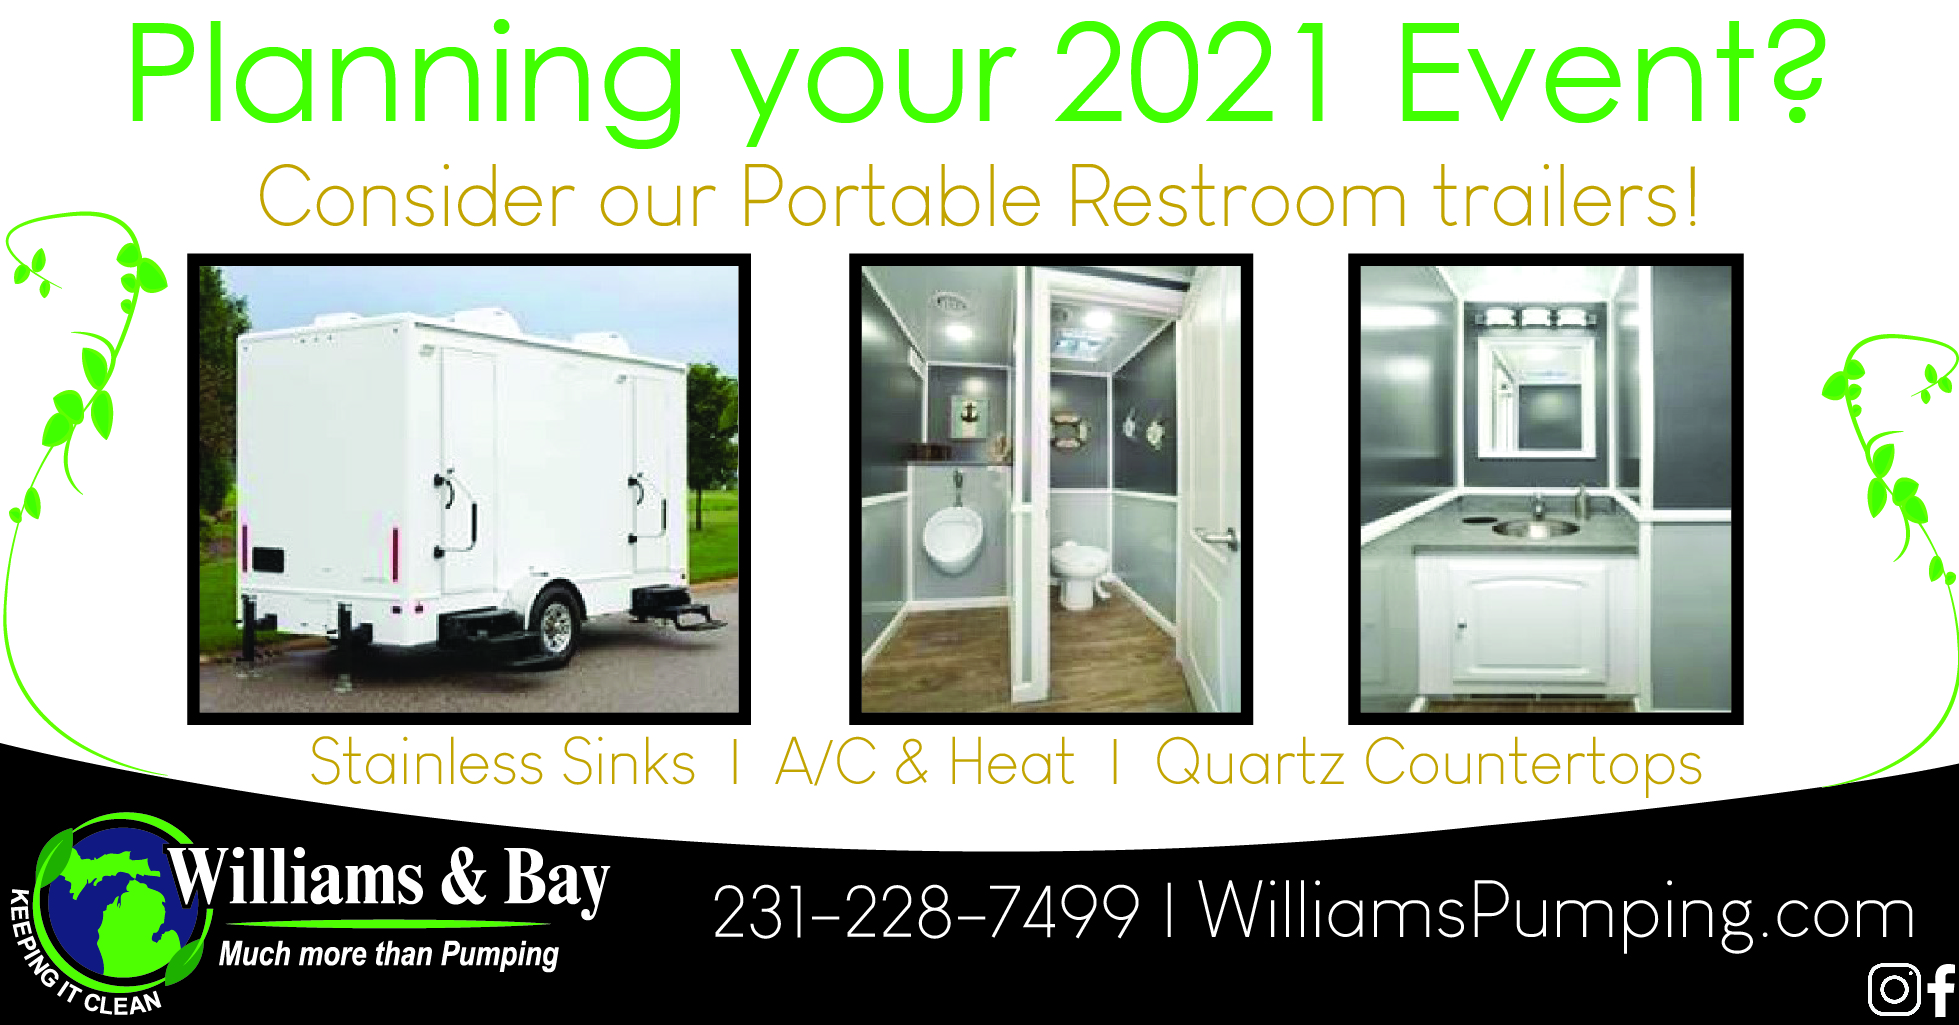 2021 Event - Portable Restroom Trailers